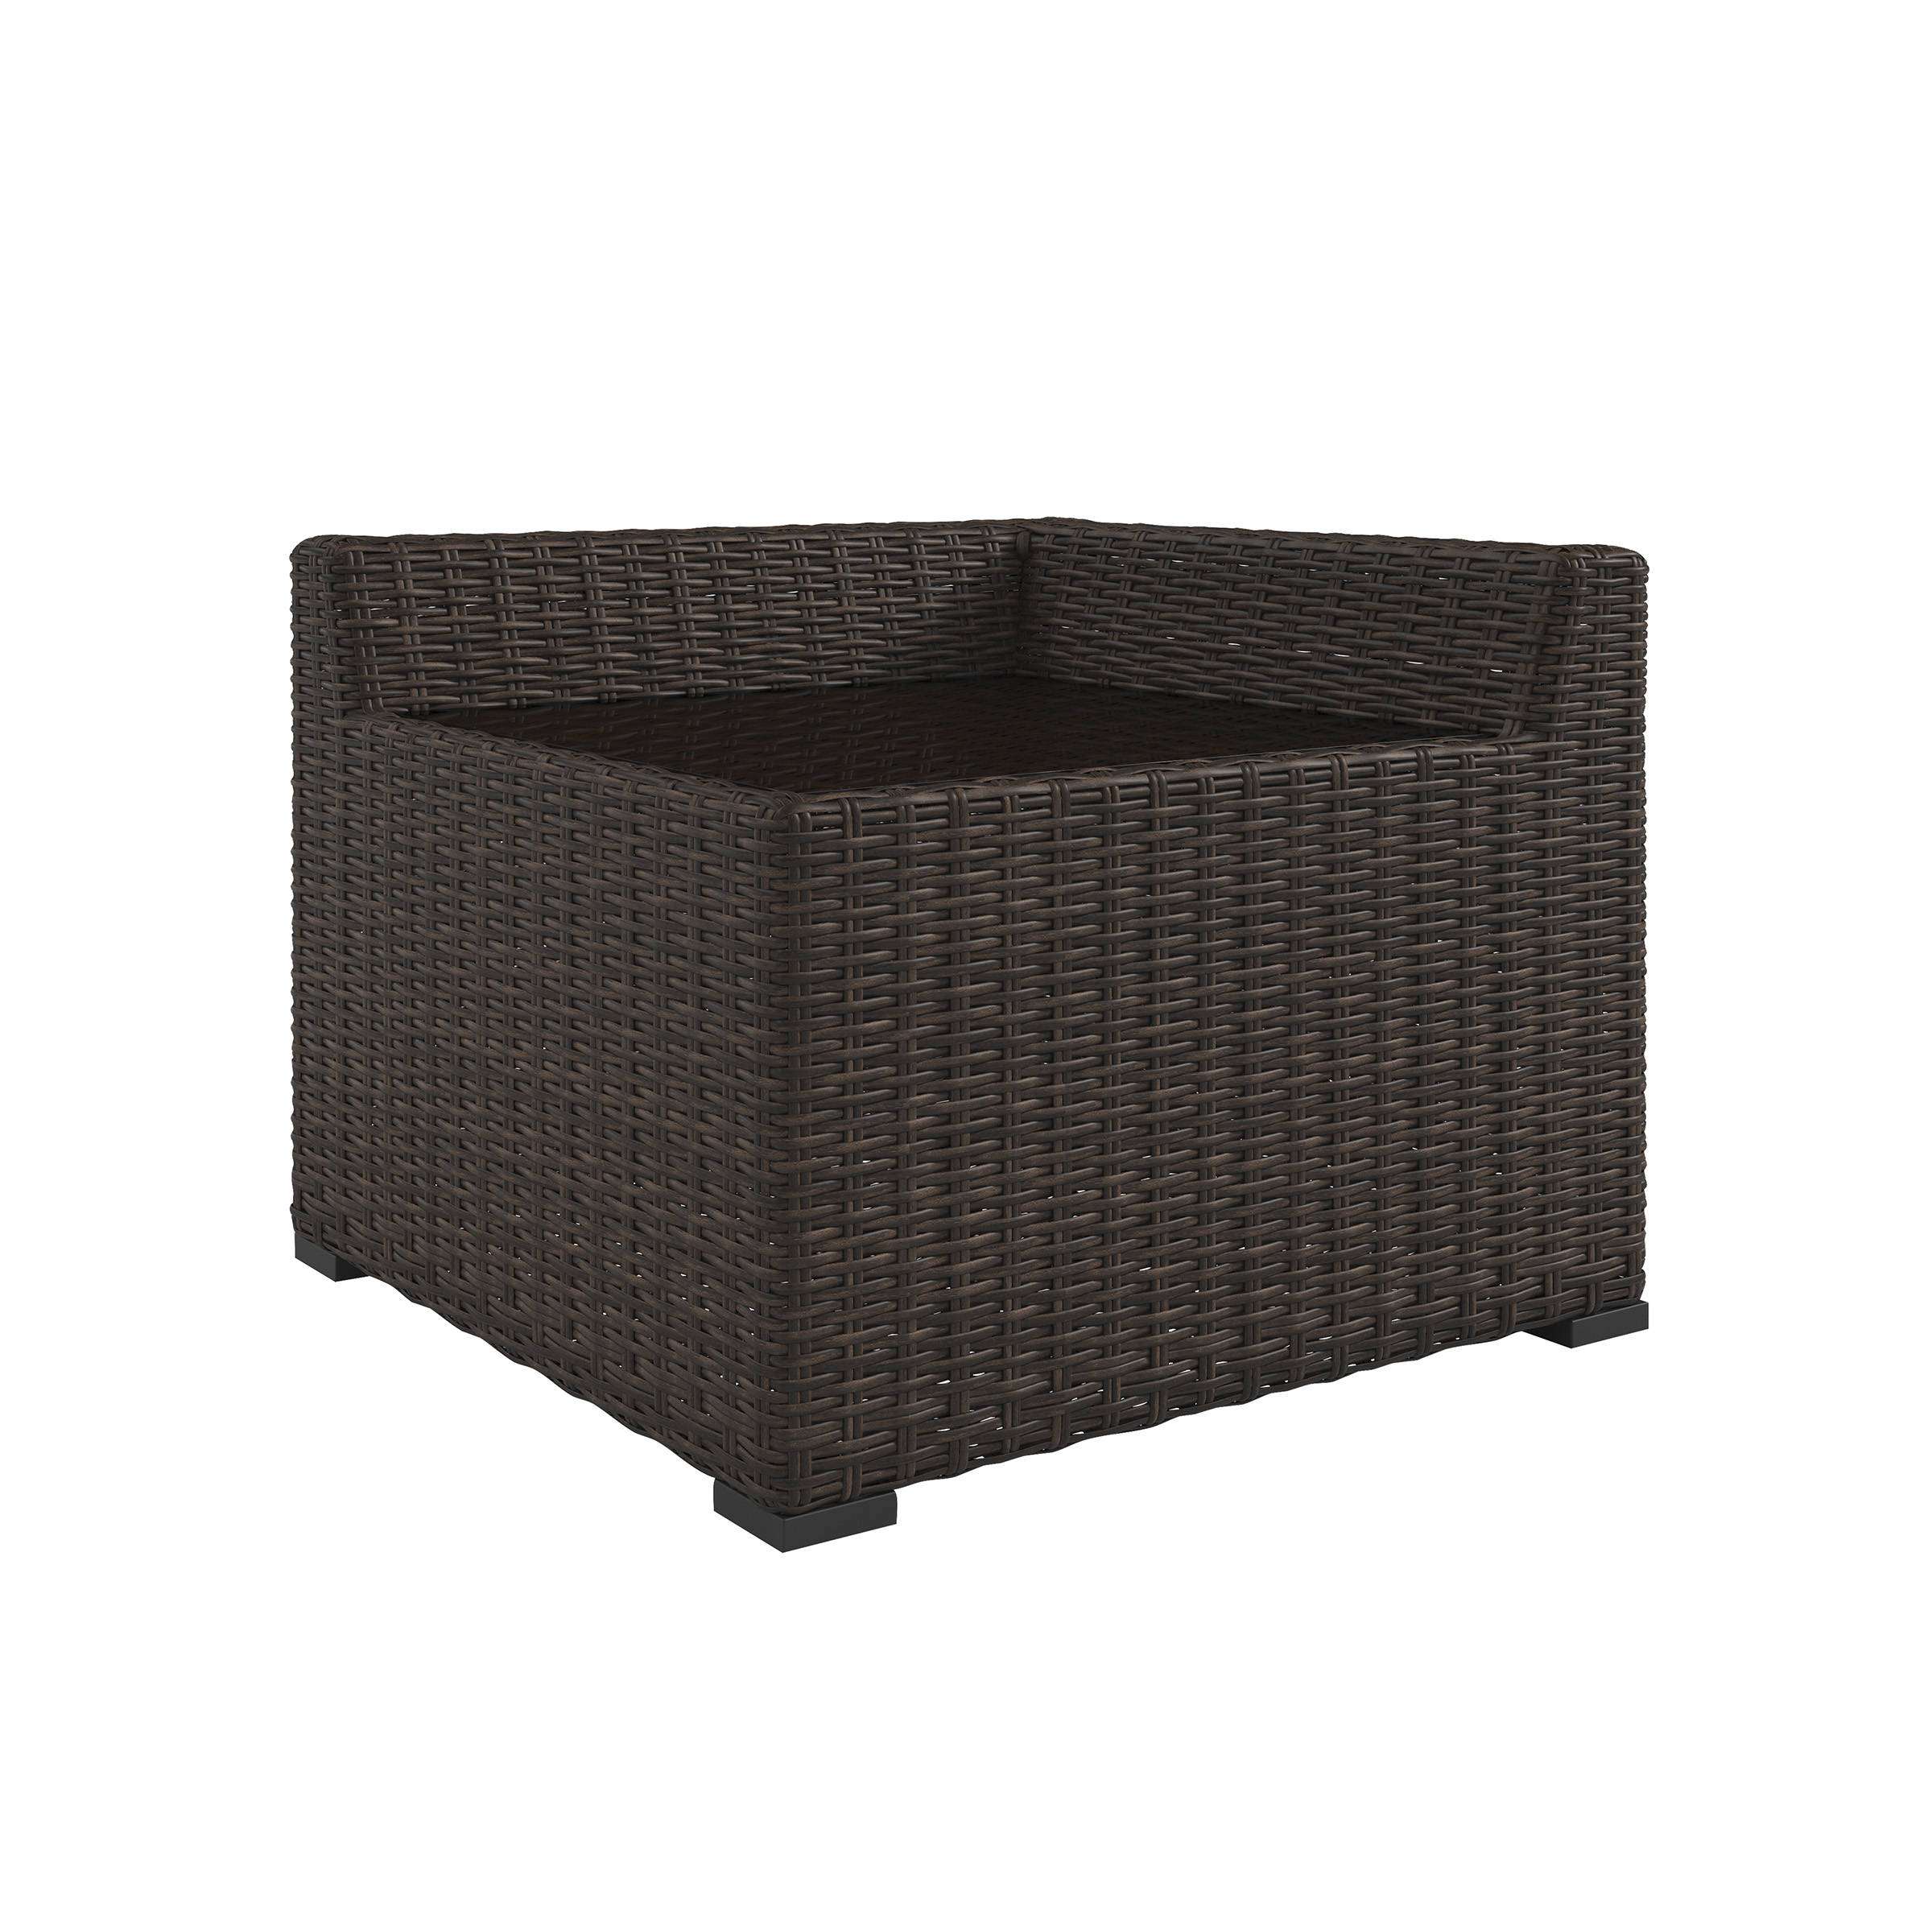 Ashley Furniture Alta Grande Outdoor Corner End Table The Classy Home - Black corner end table